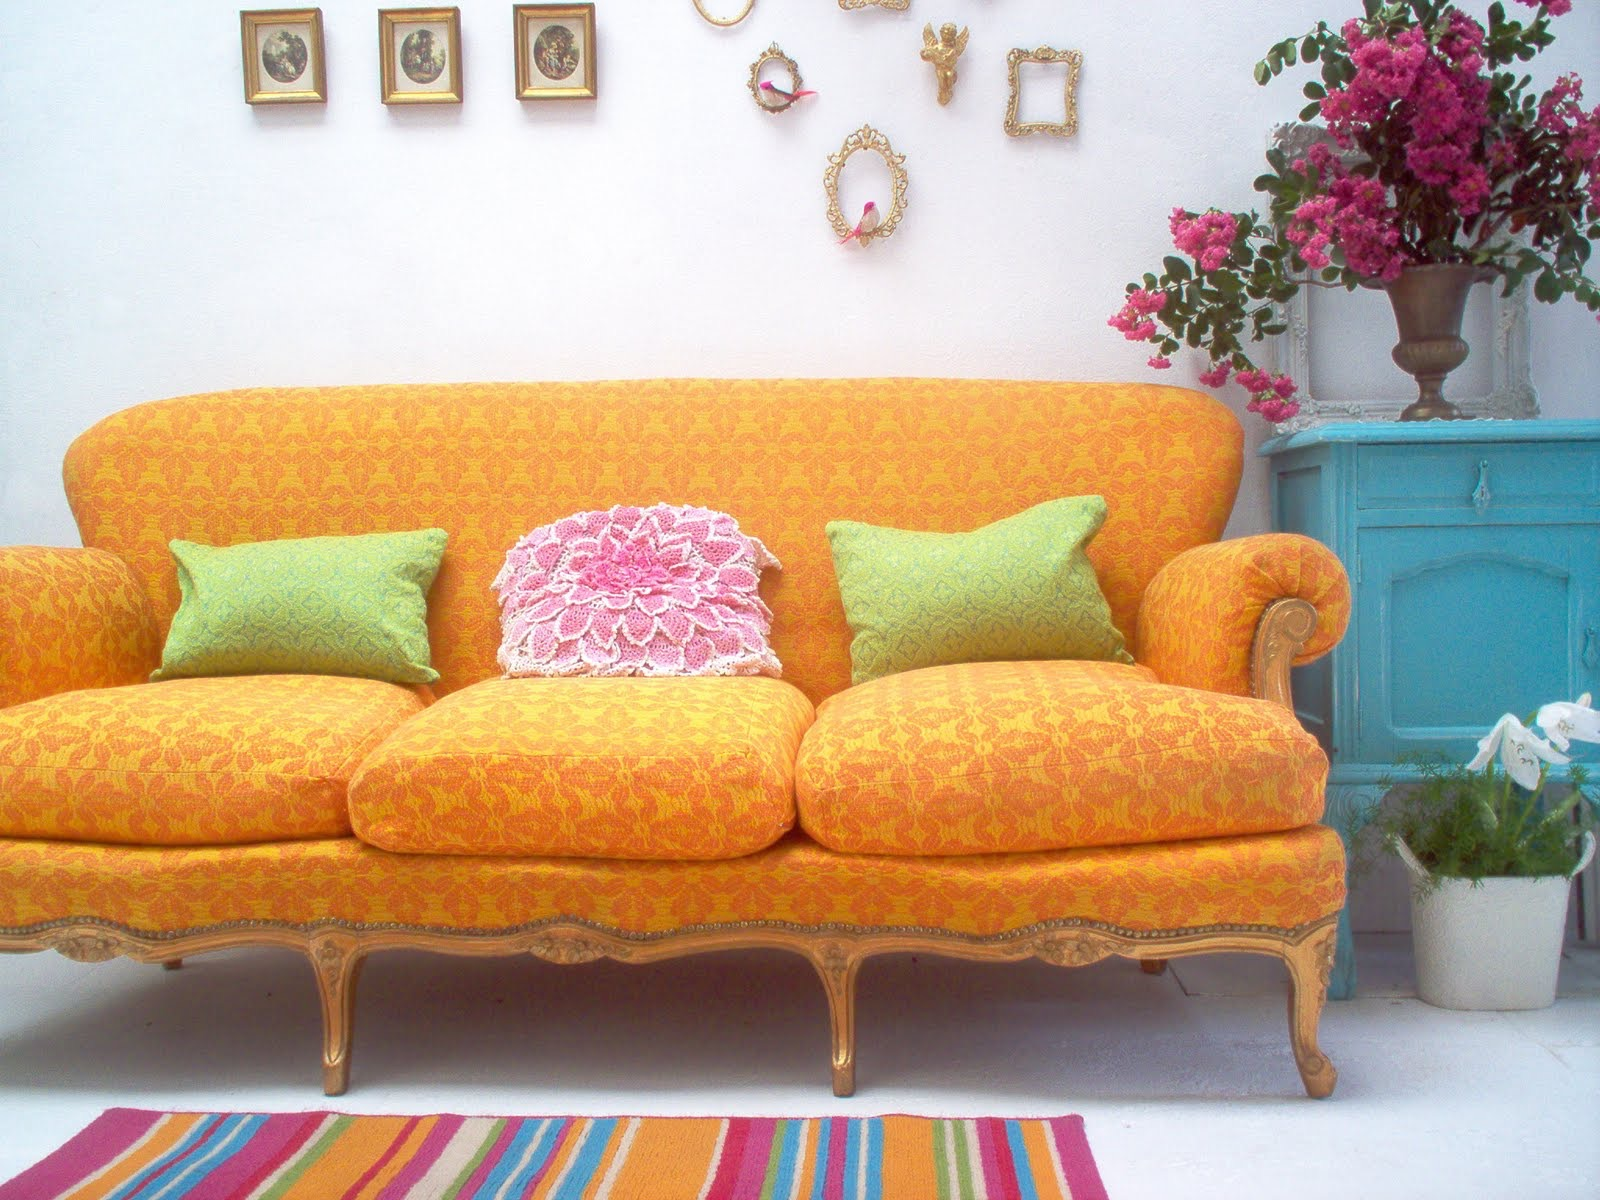 Cozy Moroccan Living Room Chair Furniture (Image 7 of 25)